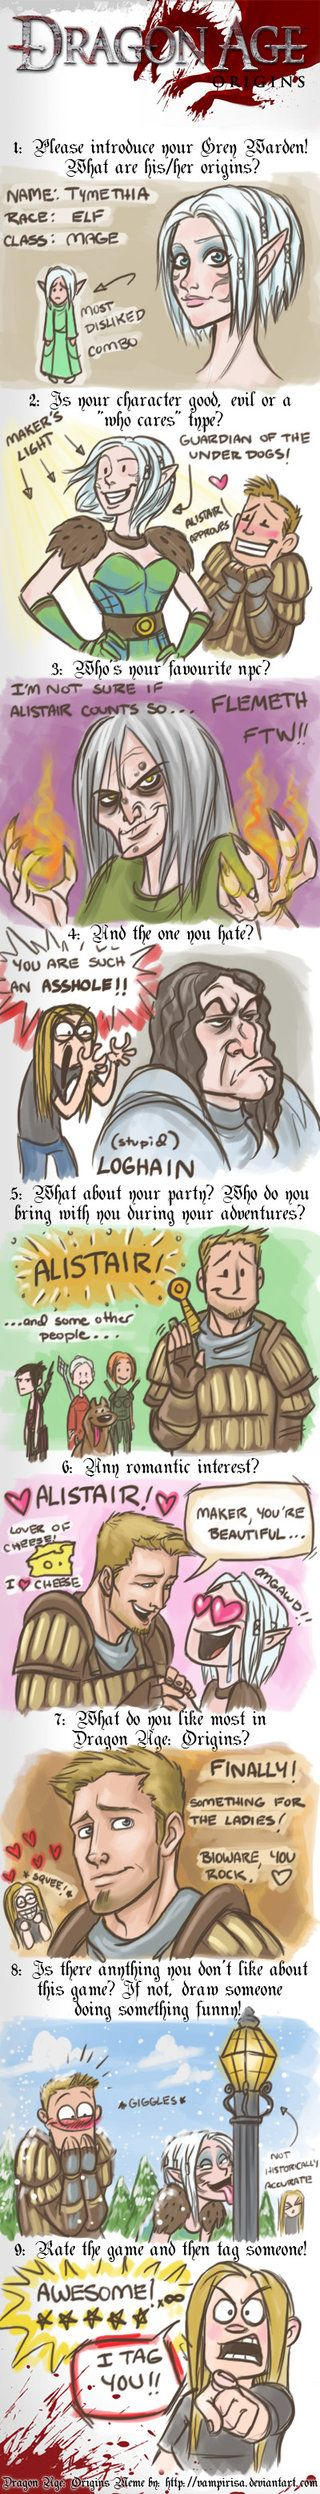 Dragon Age Meme by *WendyDoodles